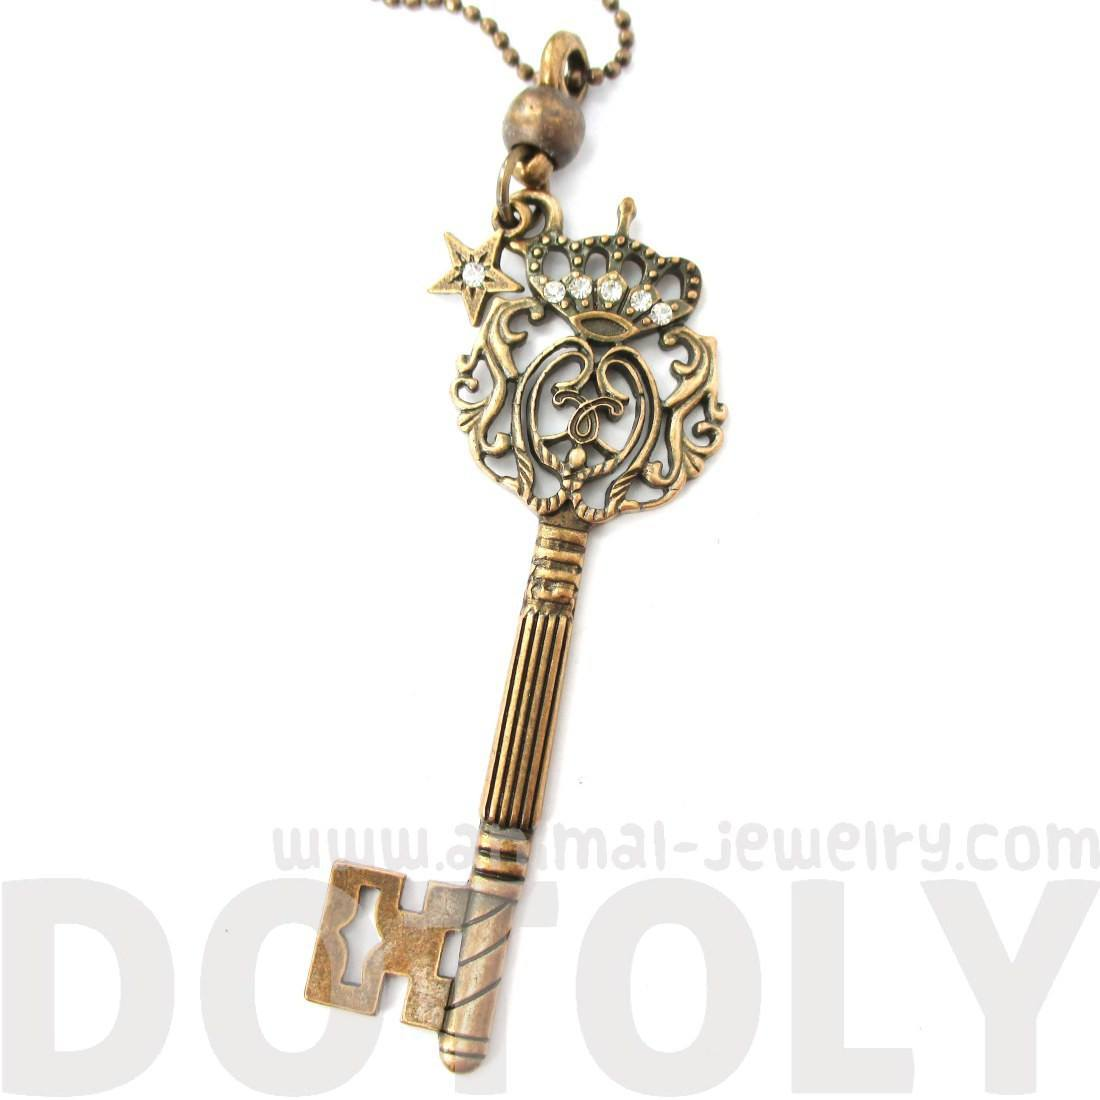 Skeleton Key with Decorative Handle Shaped Pendant Necklace in Bronze